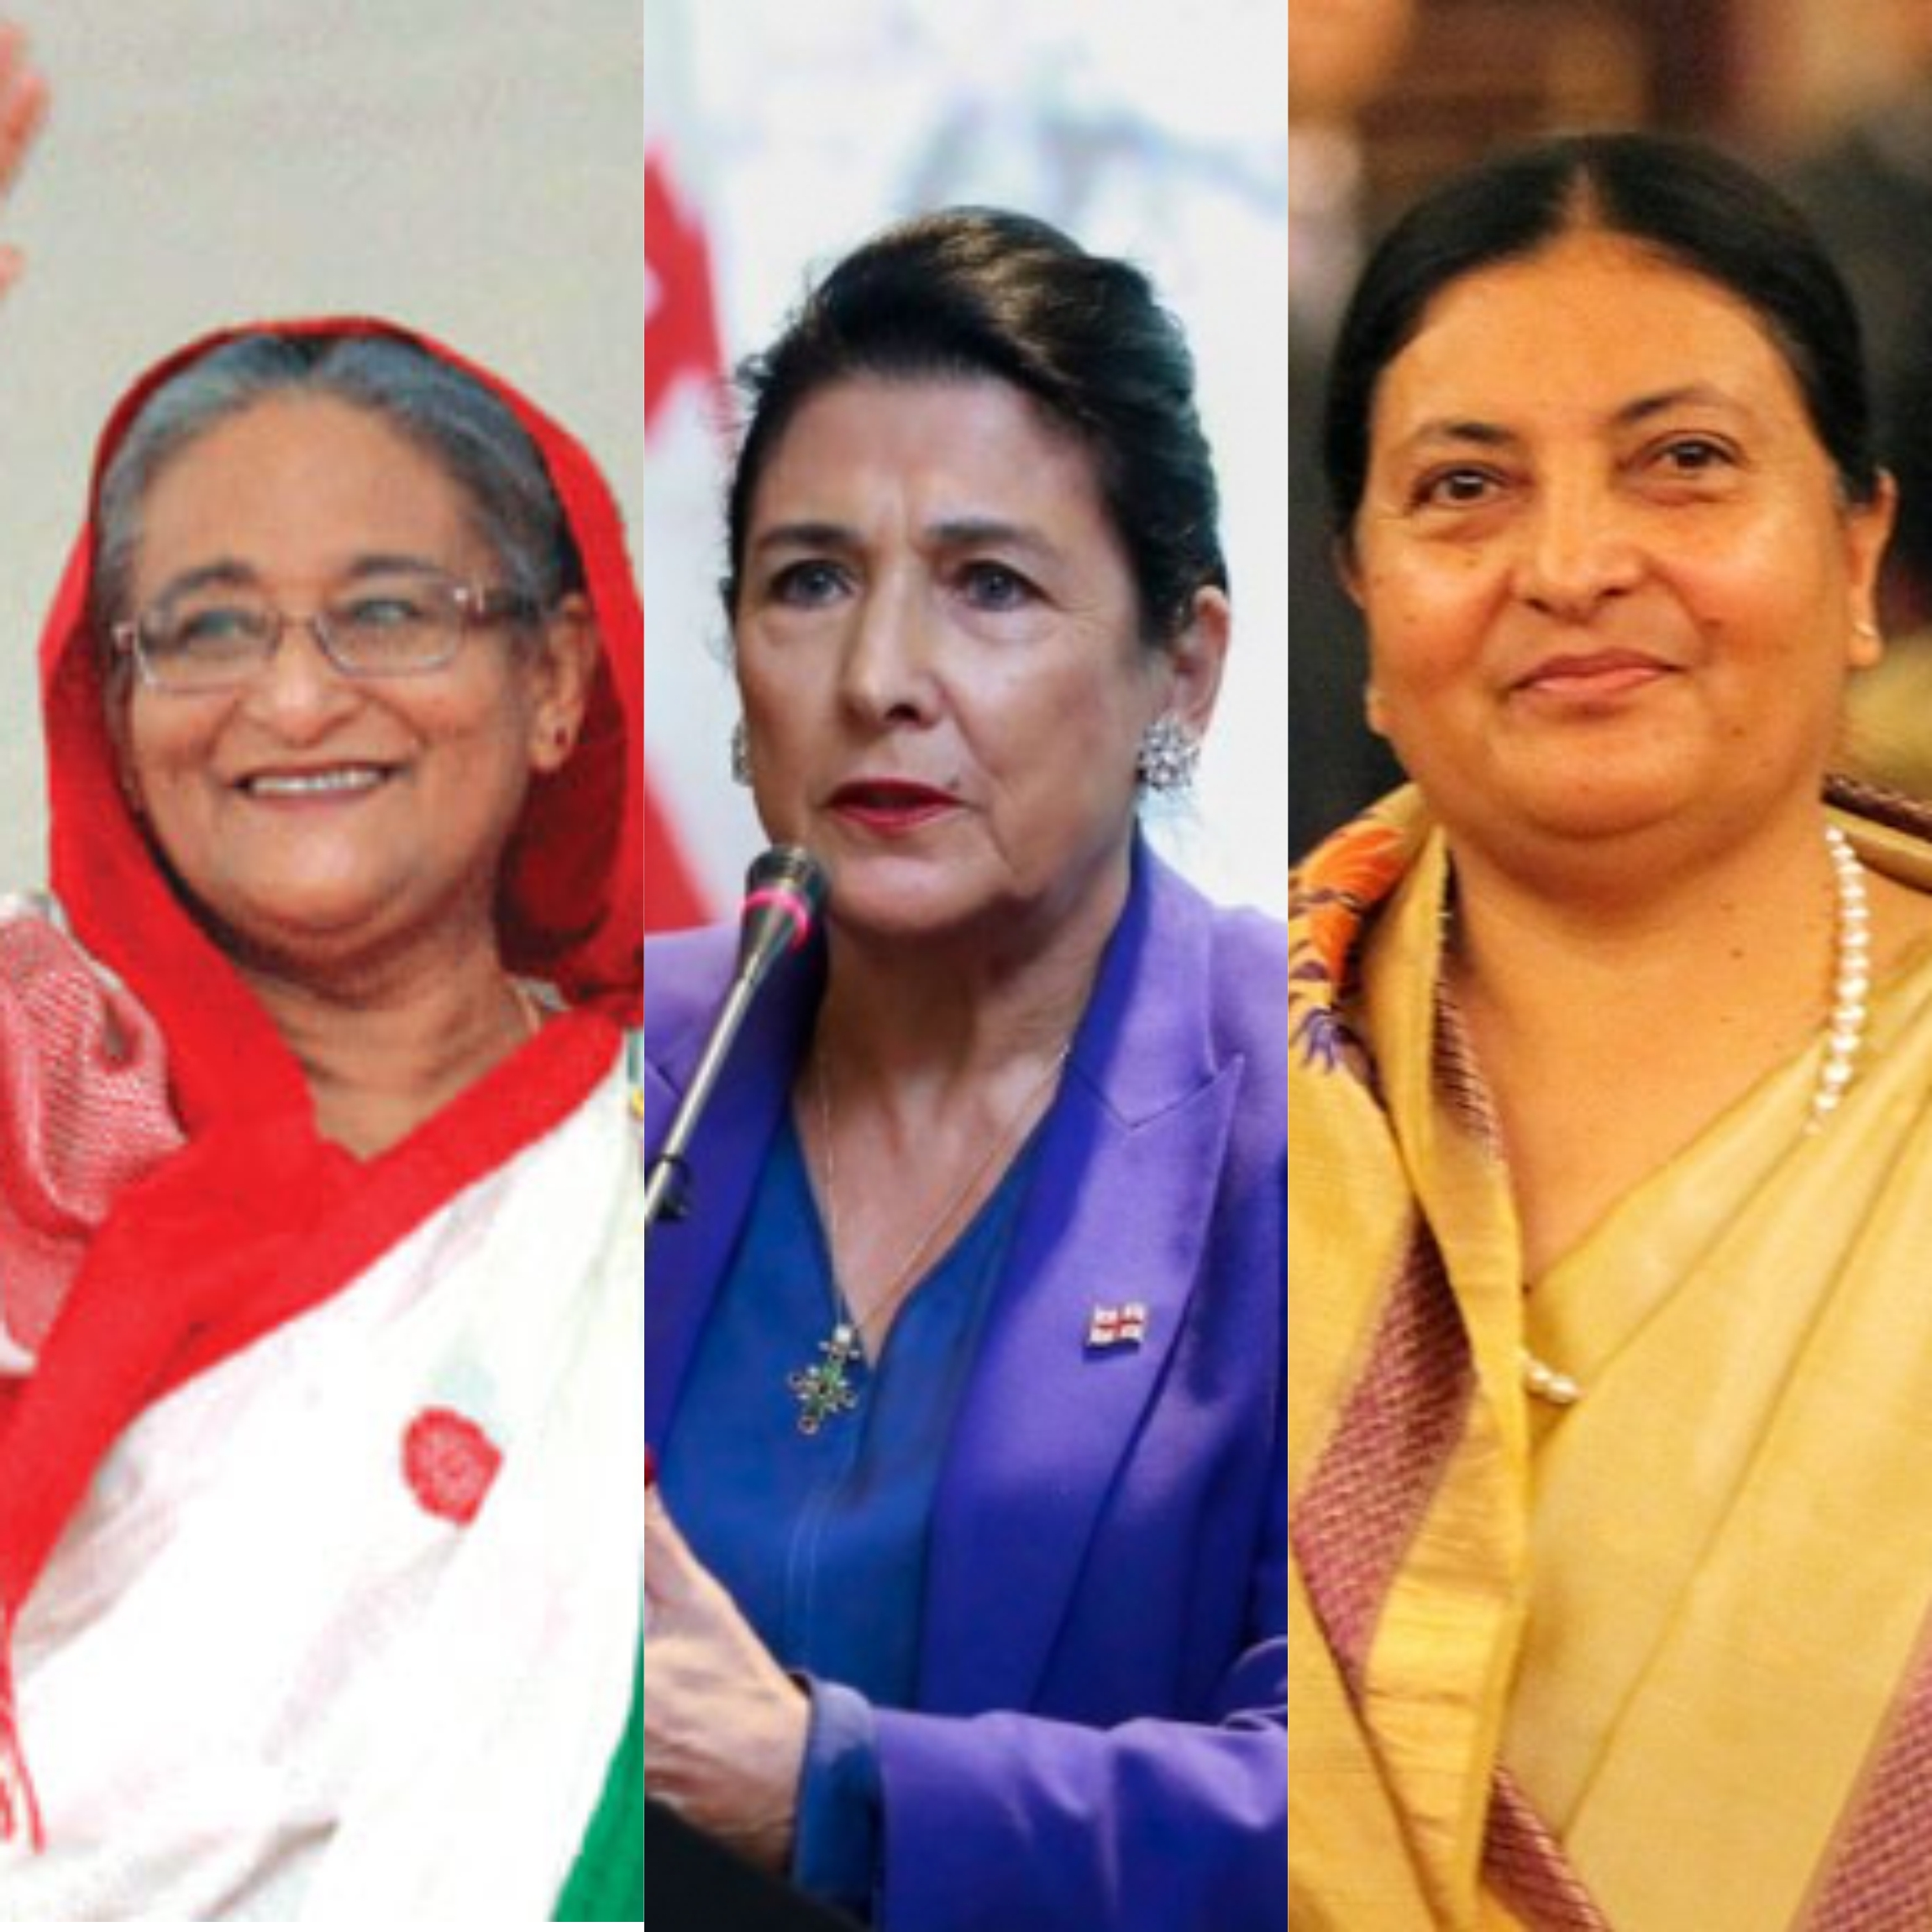 Coronavirus Update - Even More Women Leaders Who Are Successfully Battling Pandemic